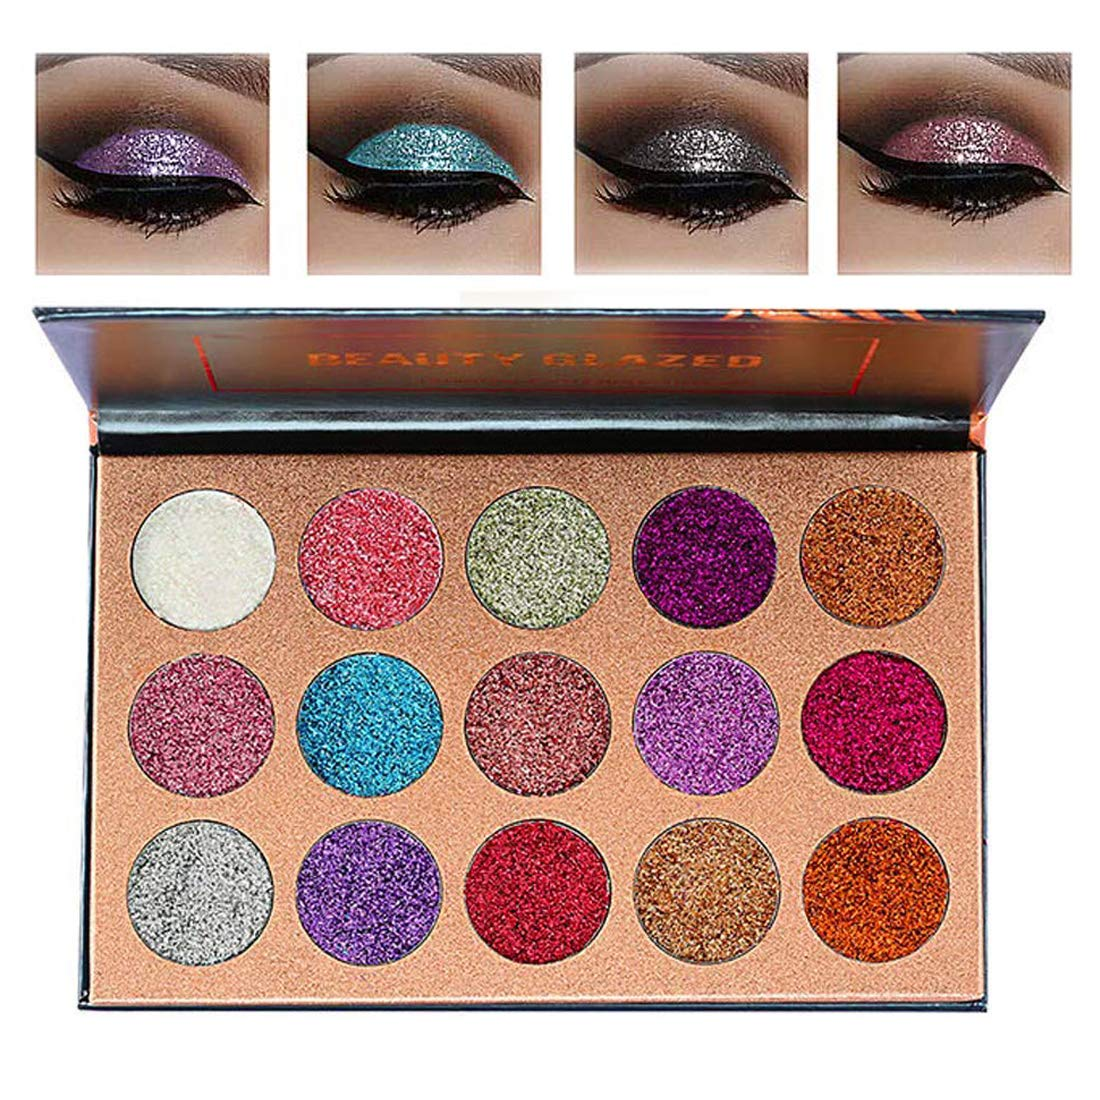 Beauty Glazed Shimmer and Matte Eye Makeup Palettes Eyeshadow 30 Colors Blendable Ultra Pigmented Eyeshadow Smokey Eyes with Make up Brushes Set